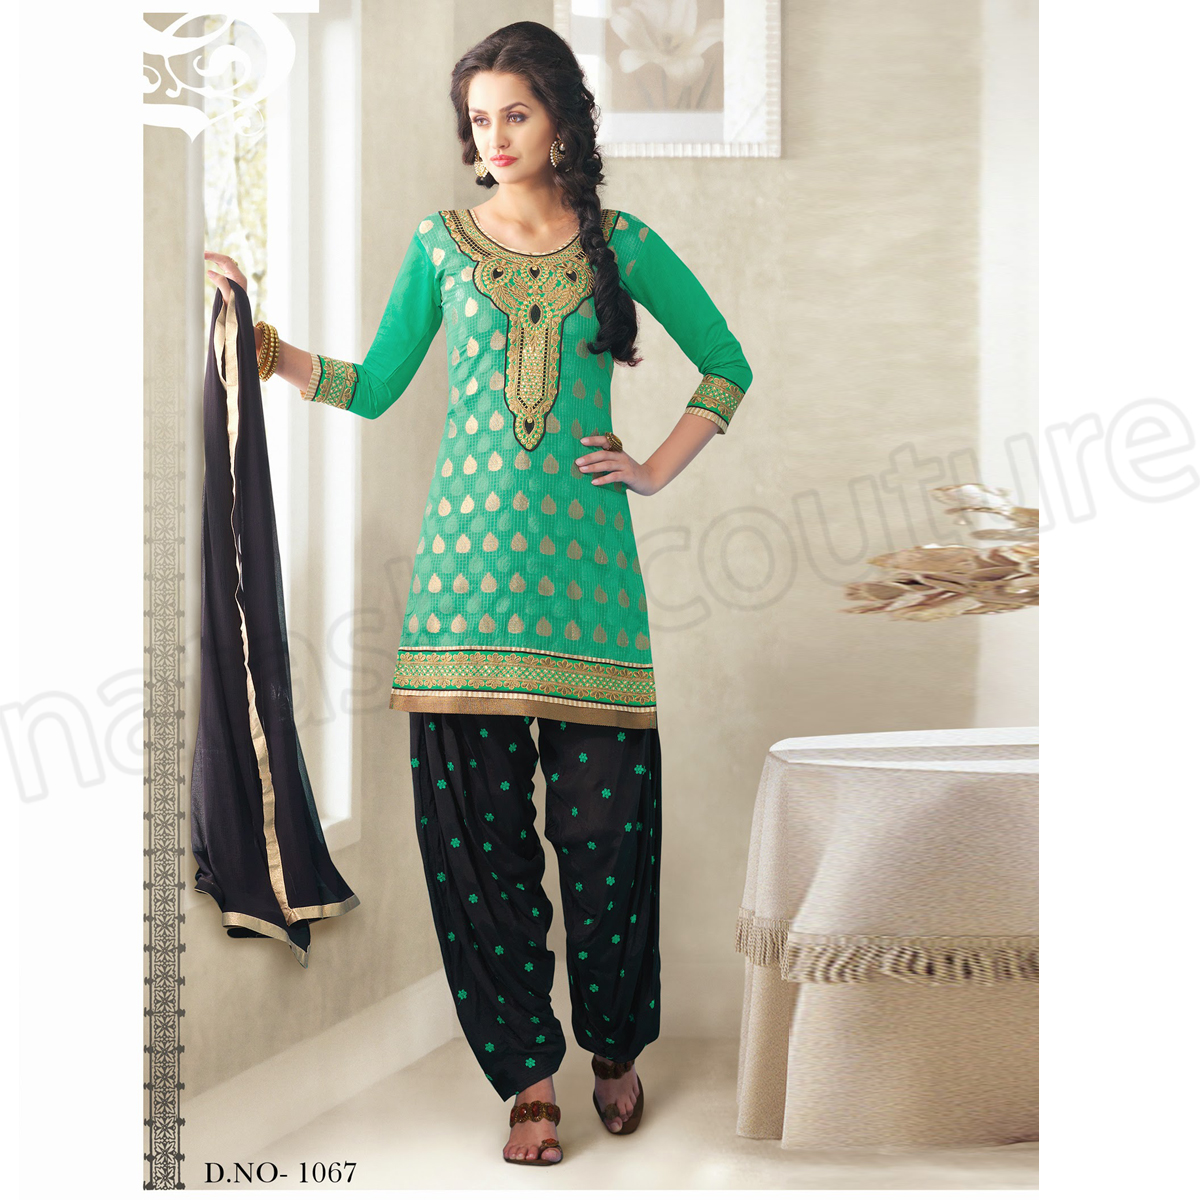 Latest Indian Patiala shalwar kameez fashion 2015-2016 (20)